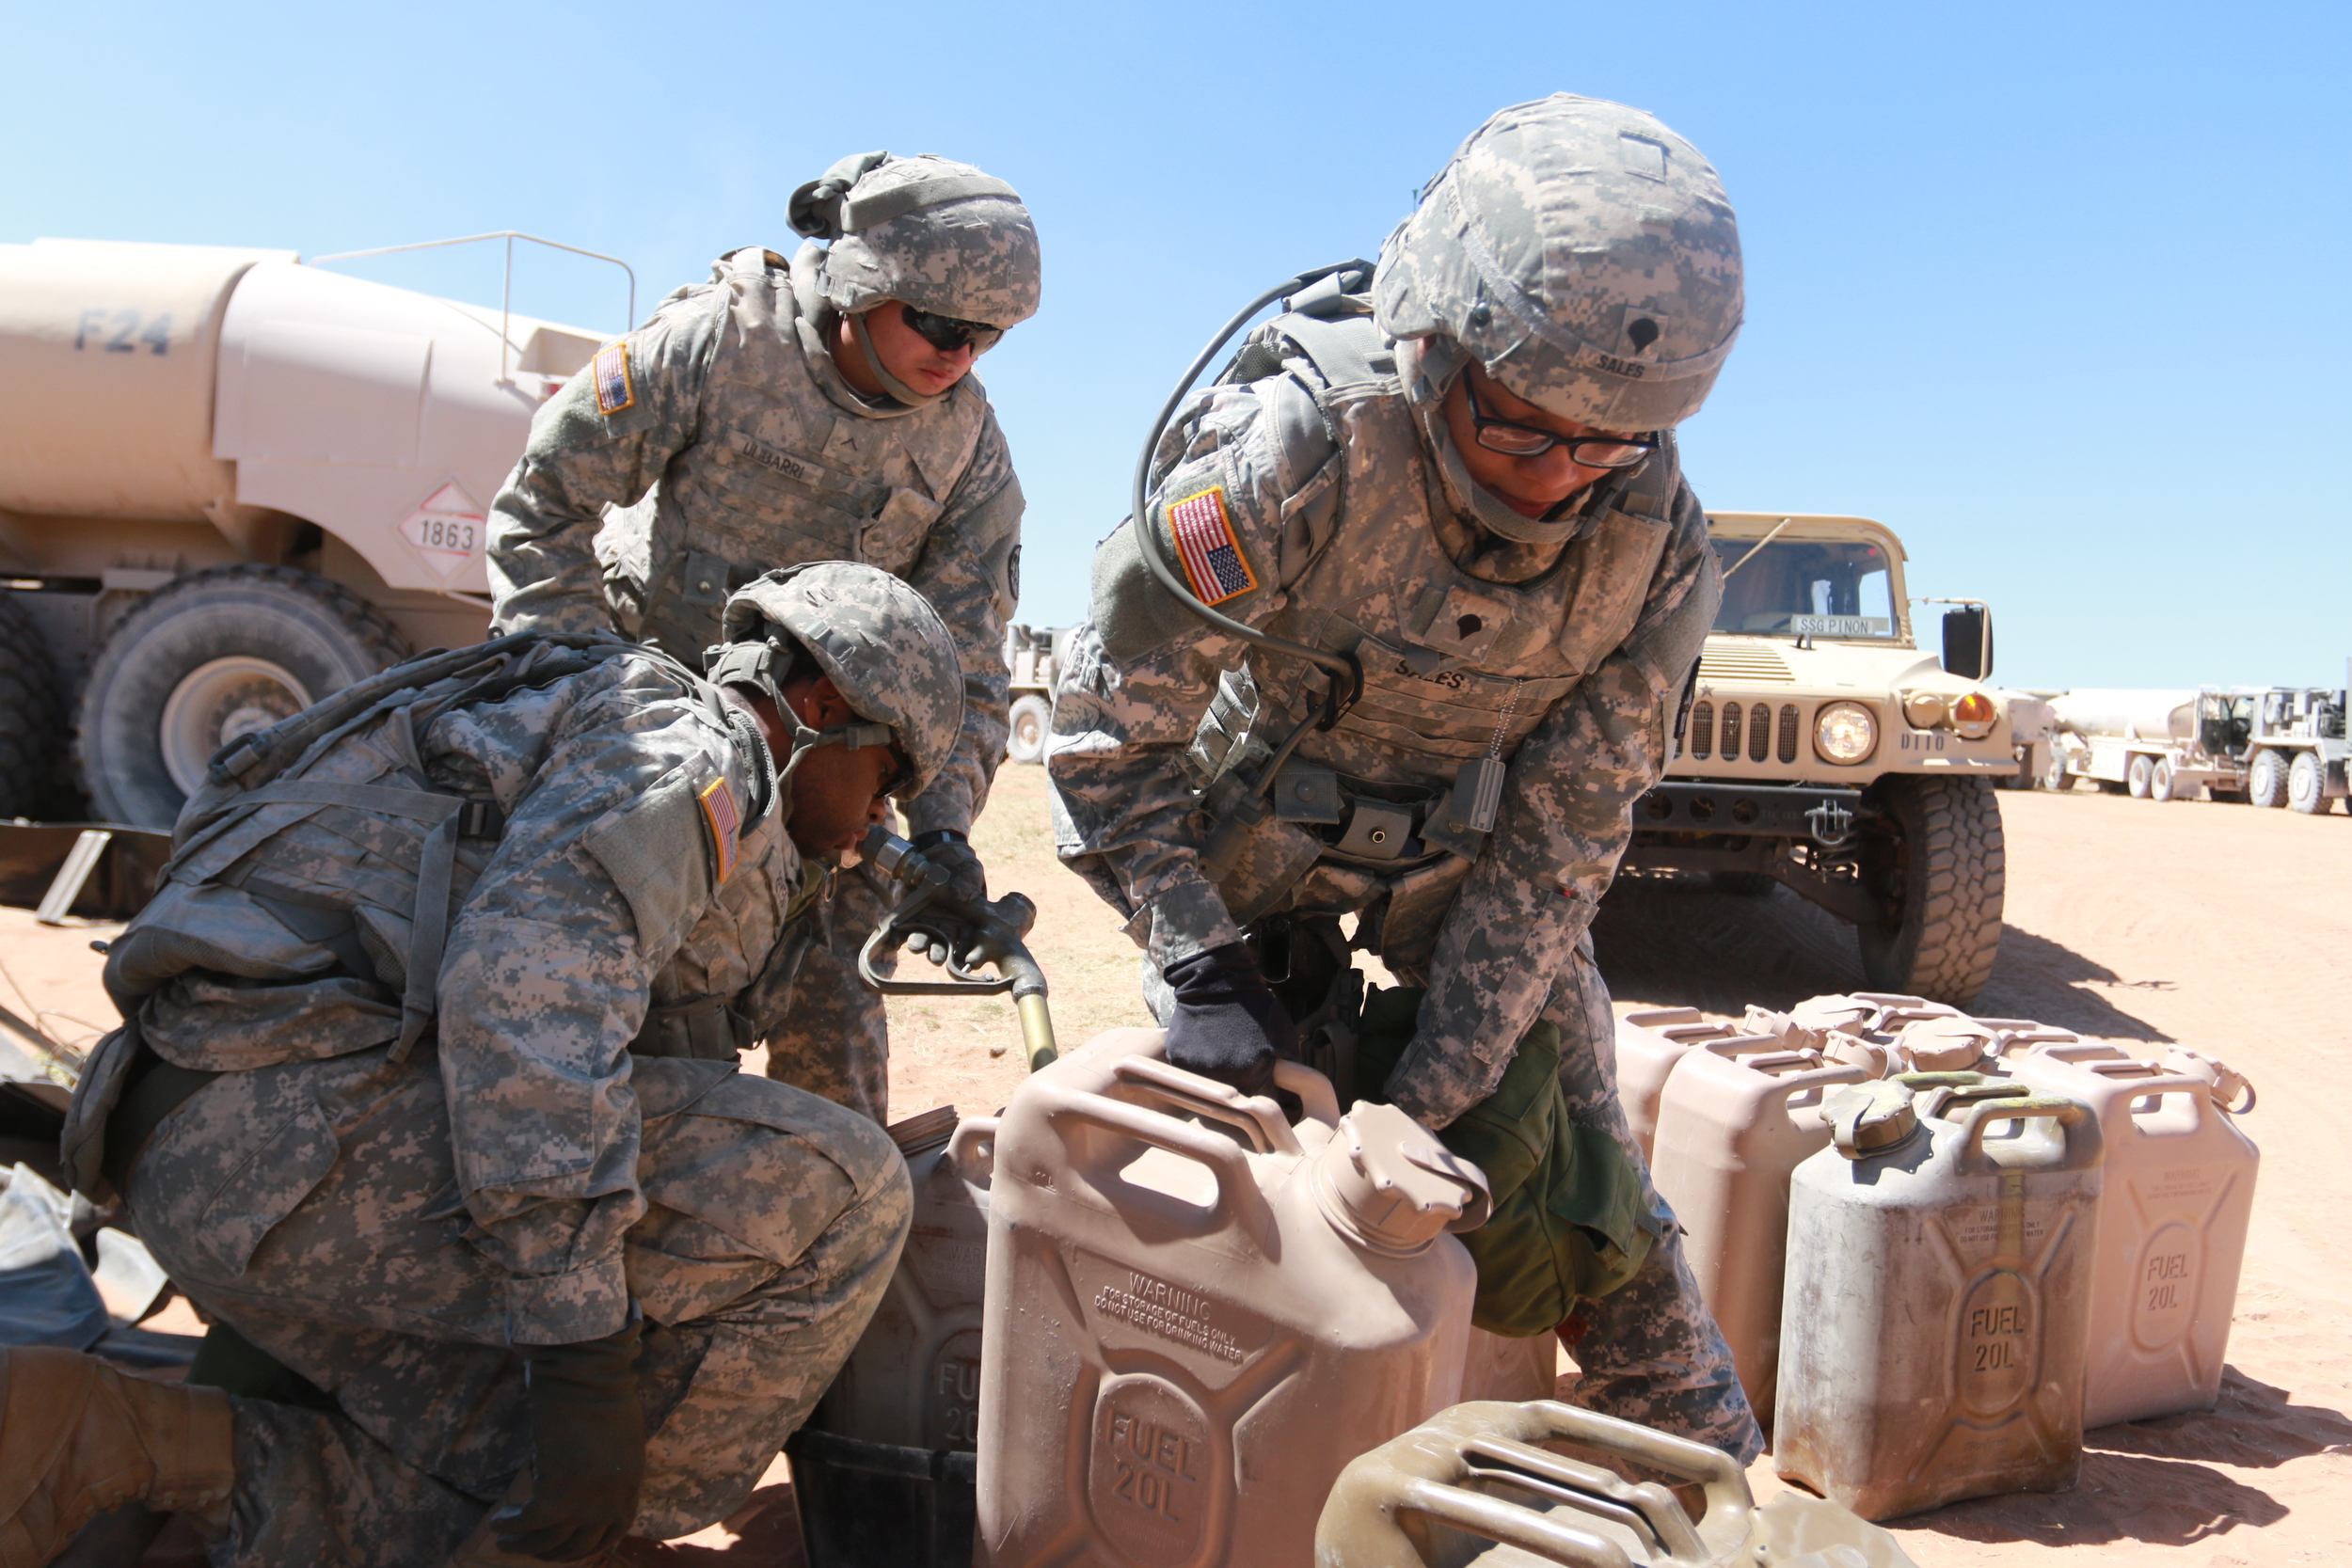 Fort Bliss troops prepare during Iron Focus, a two-week realistic training exercise that began April 23, 2015. Iron Focus is one of the largest in the nation, and one of the final steps before being deployed.